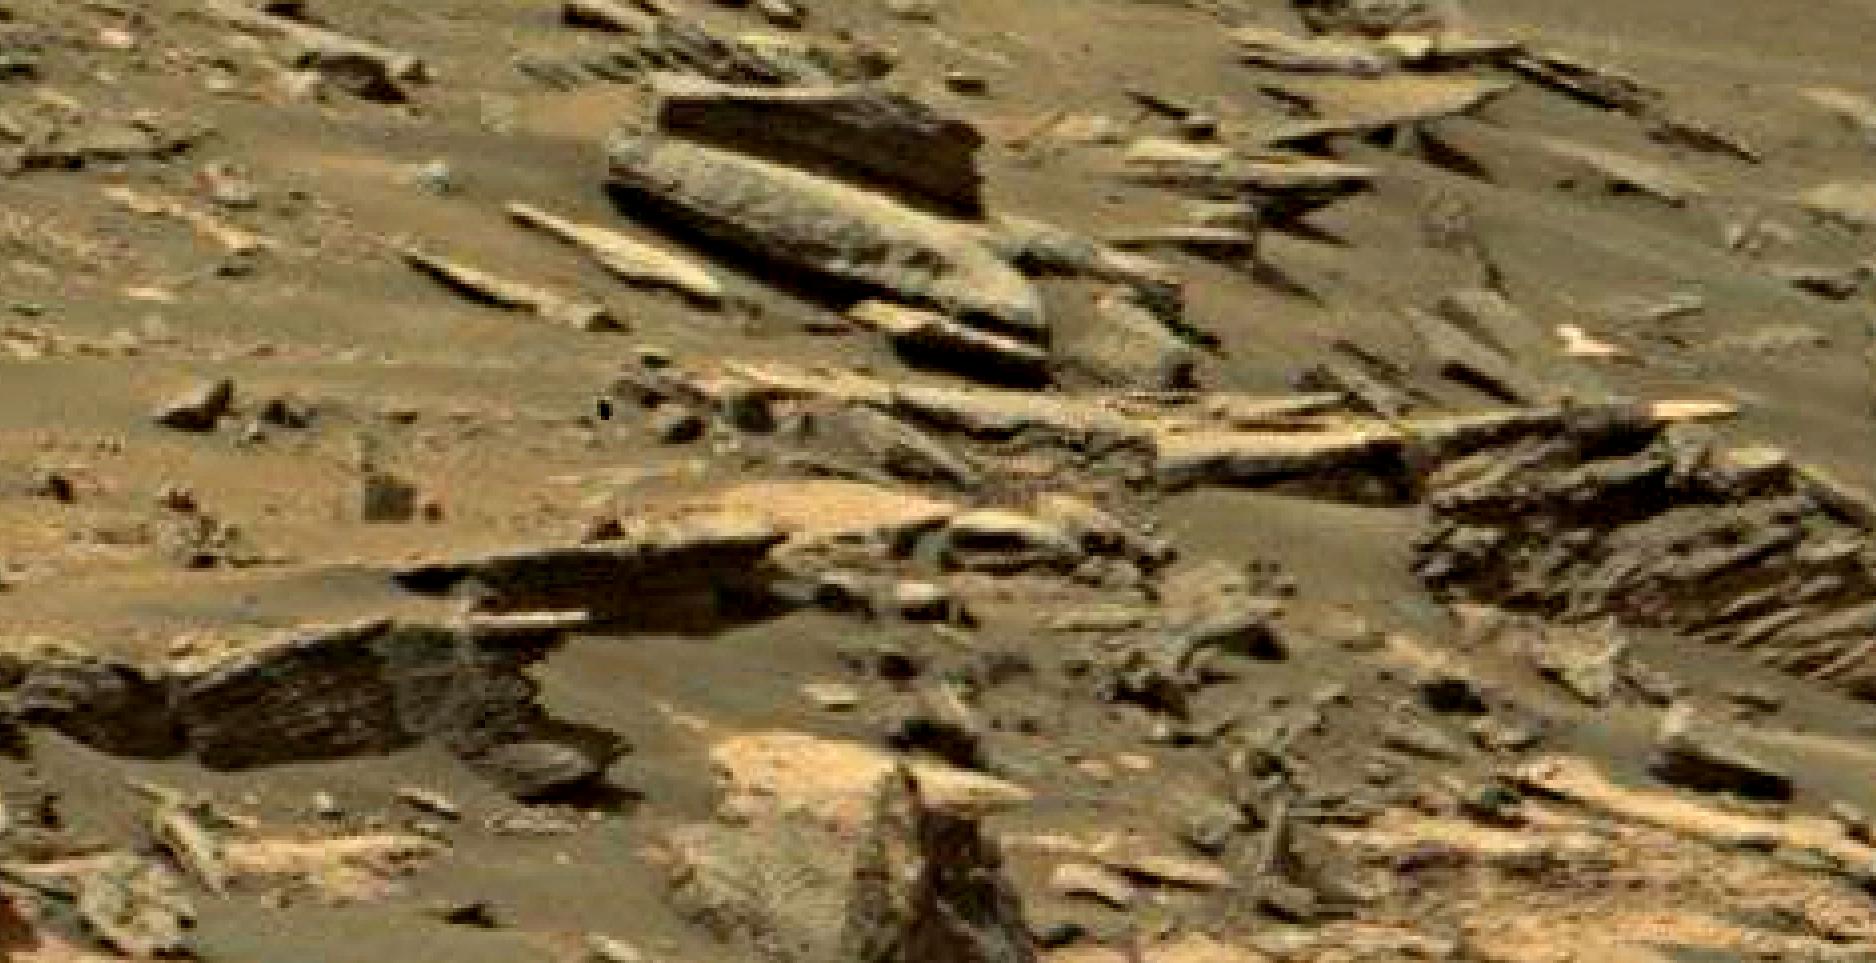 mars sol 1447 anomaly artifacts 2 - was life on mars